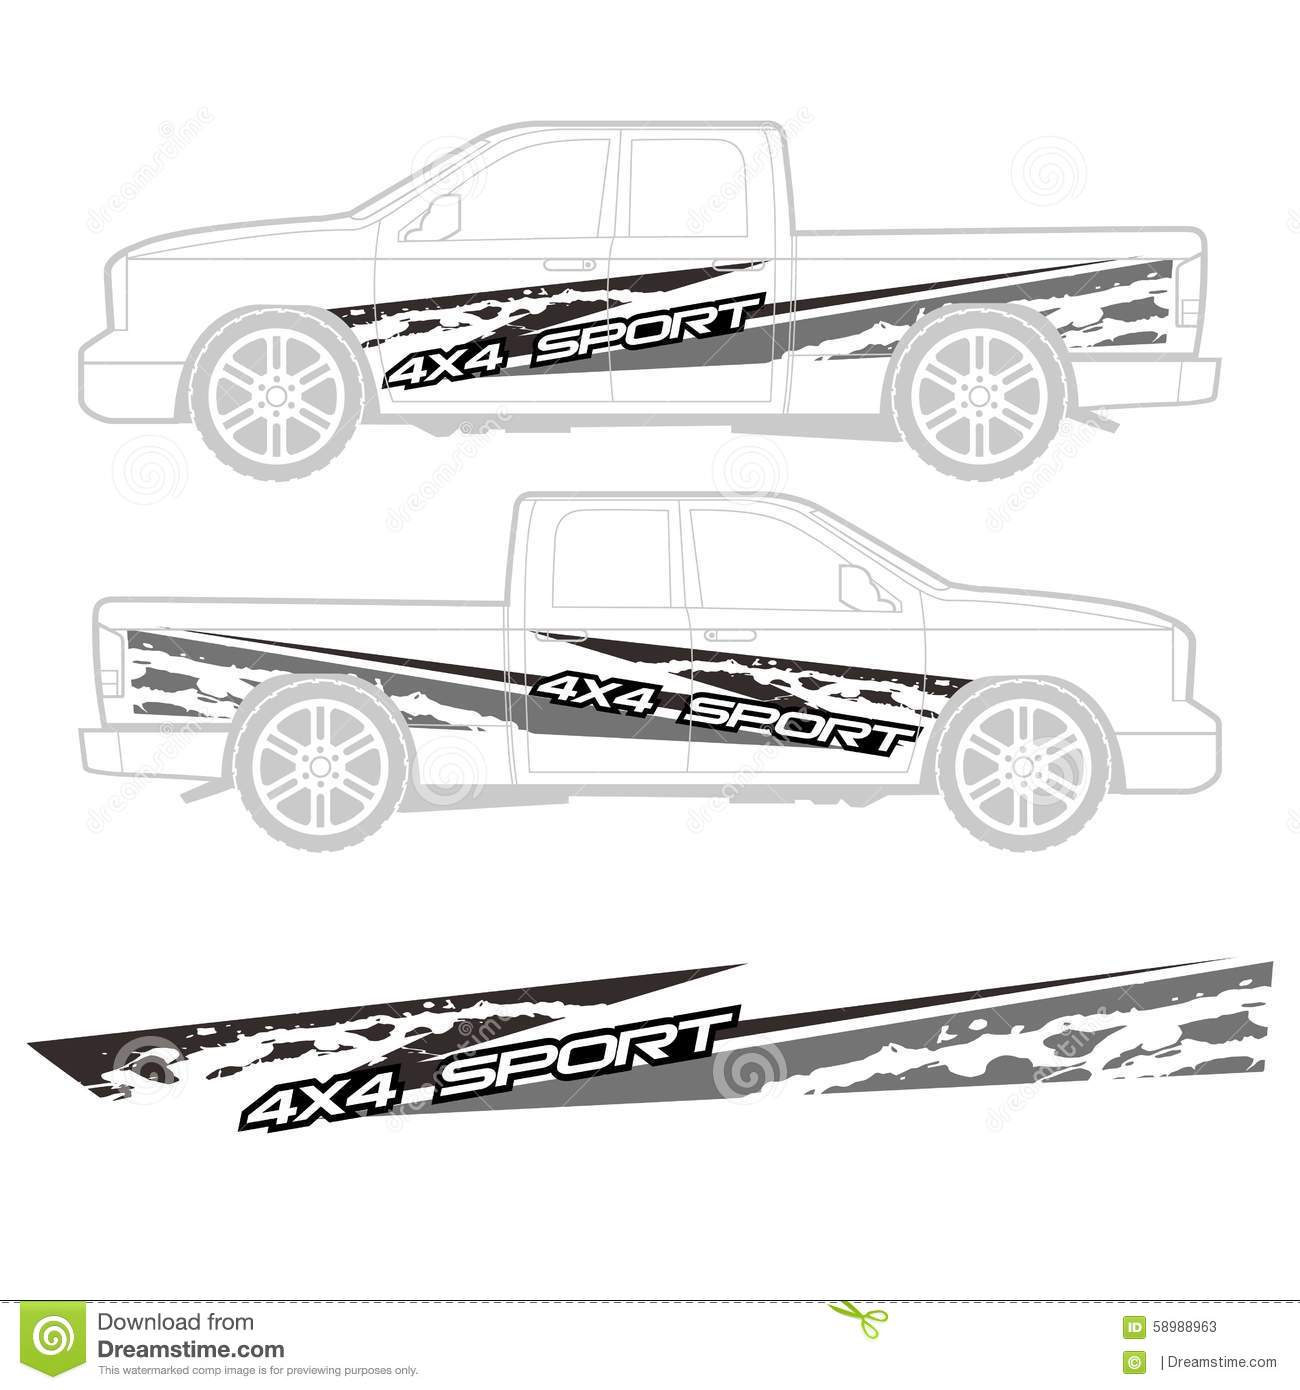 Truck And Vehicle Decal Graphic Design Stock Vector Image - Truck decal graphicstruck and vehicle decal graphic design stock vector image